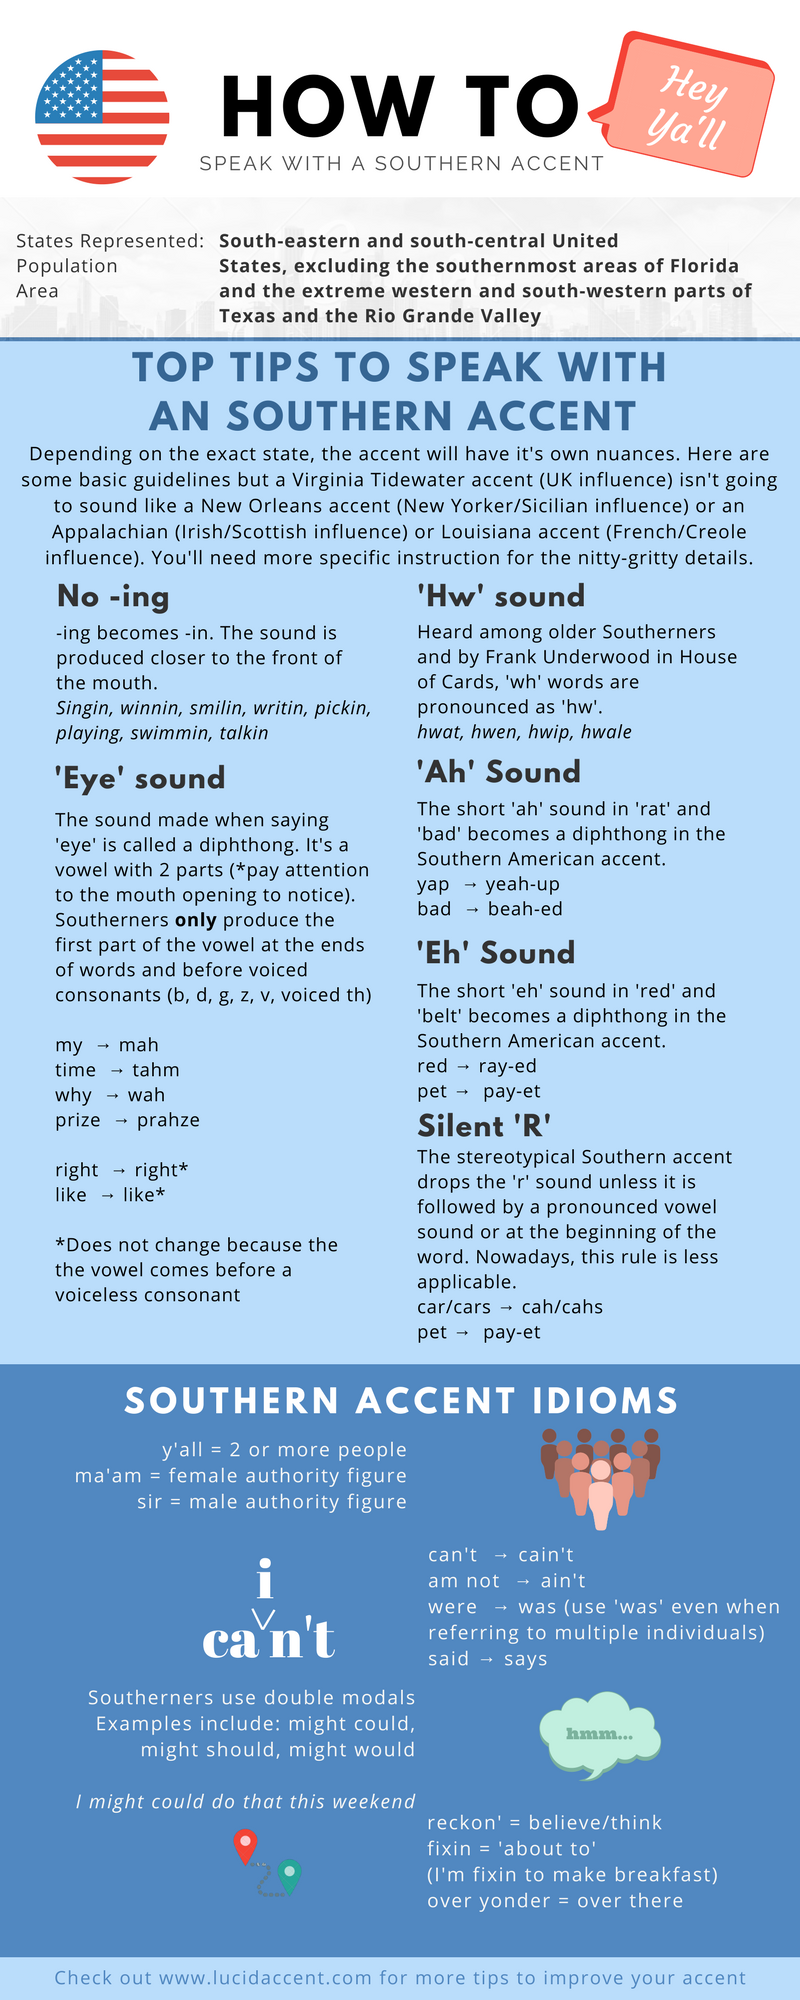 Lucid Accent Consulting | Speaking with a Southern Accent